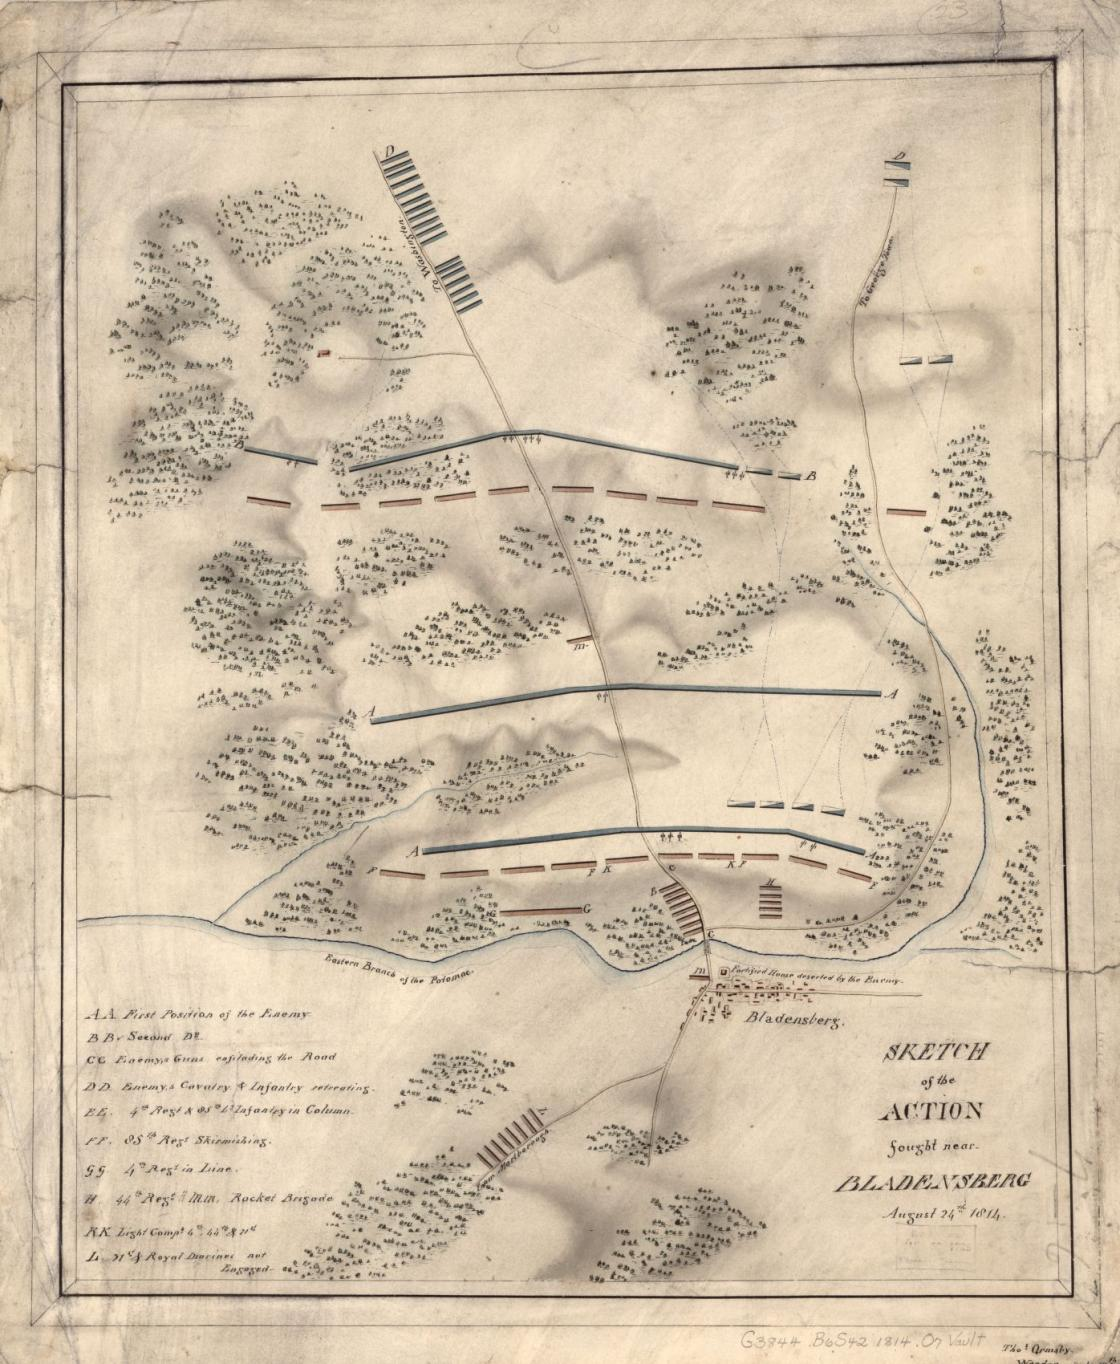 Sketch of the Action fought near Bladensburg